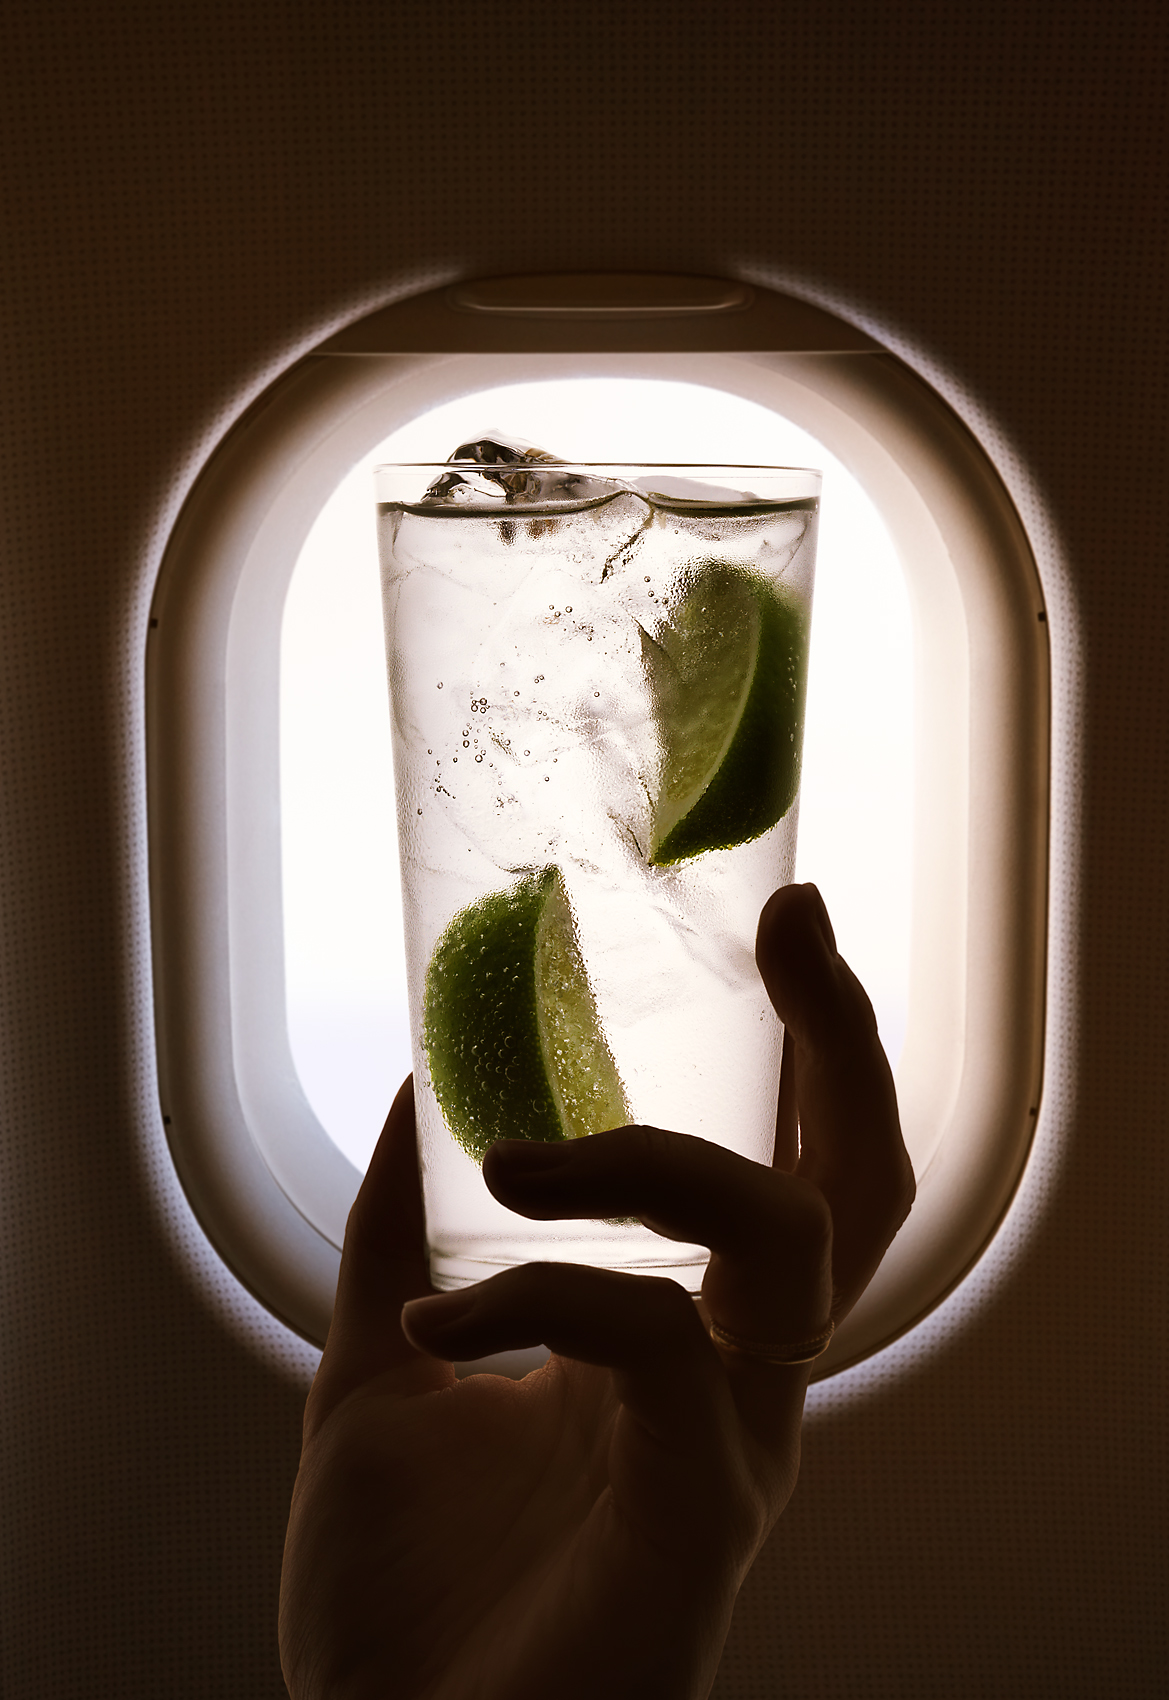 Nick_Rees-AIRPLANE_DRINKS-1